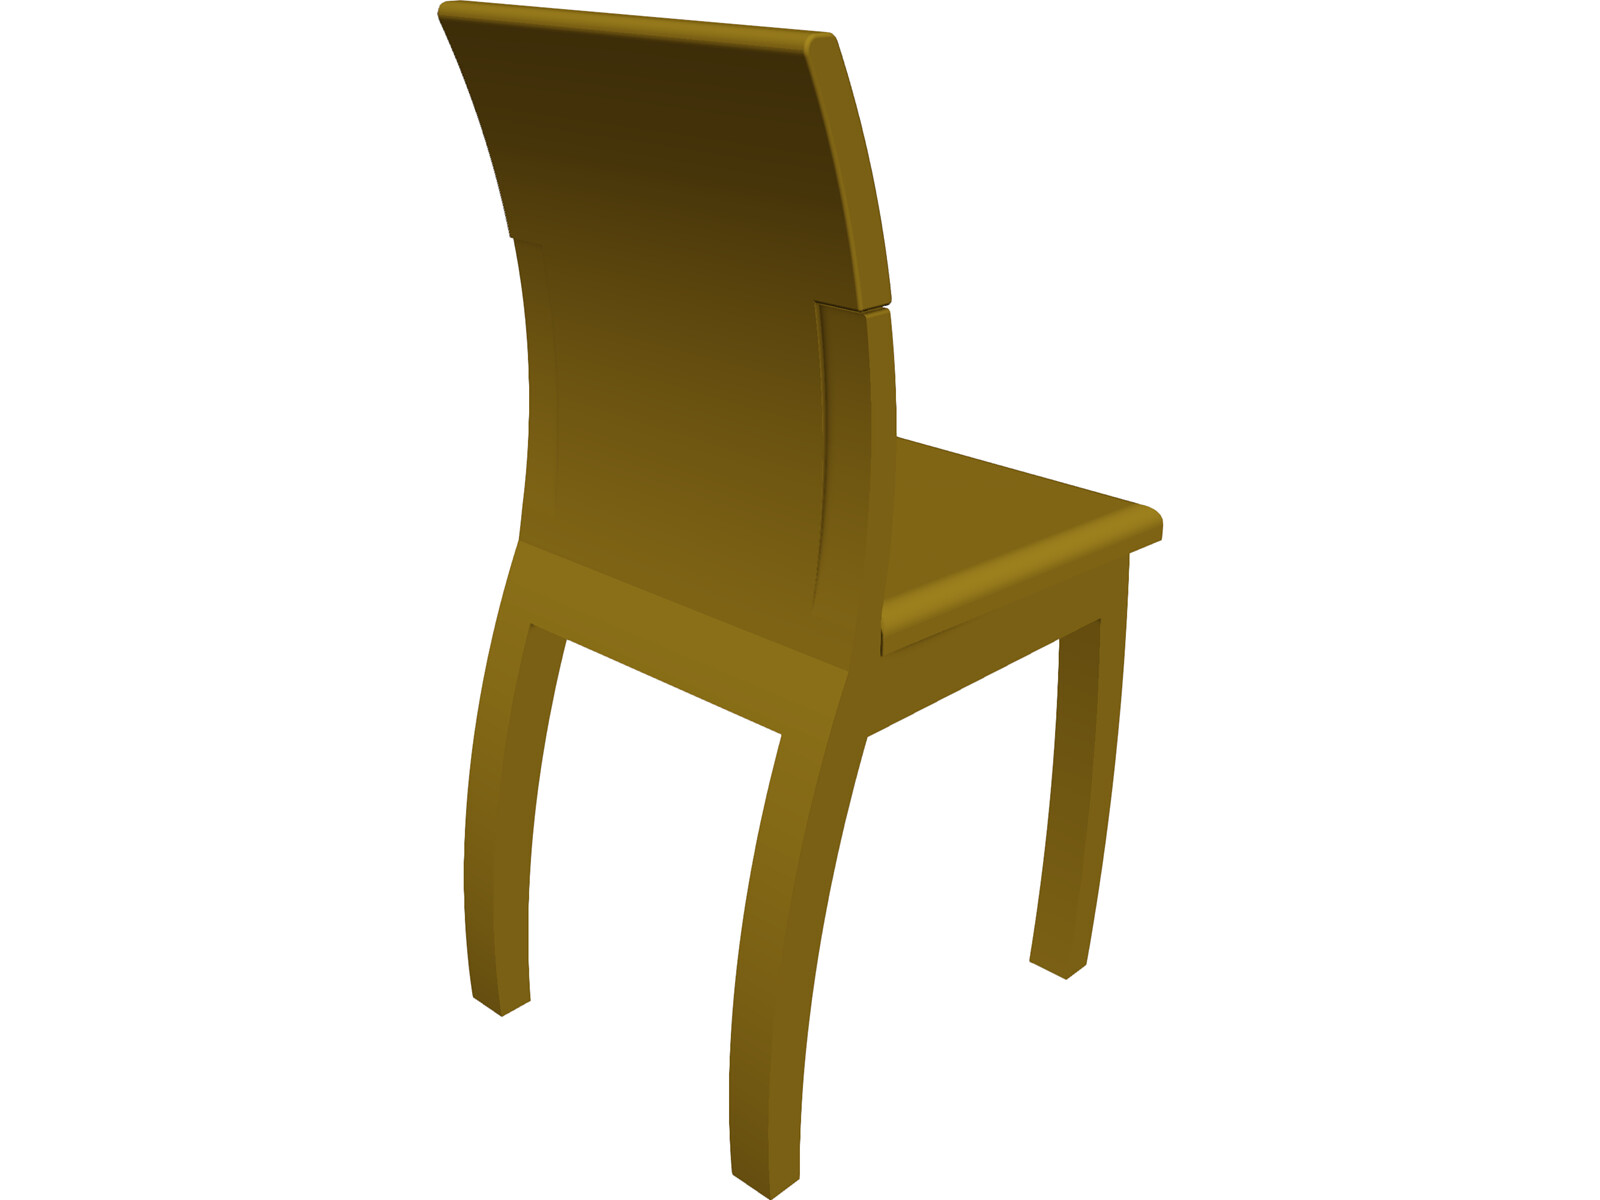 Chair 3D CAD Model